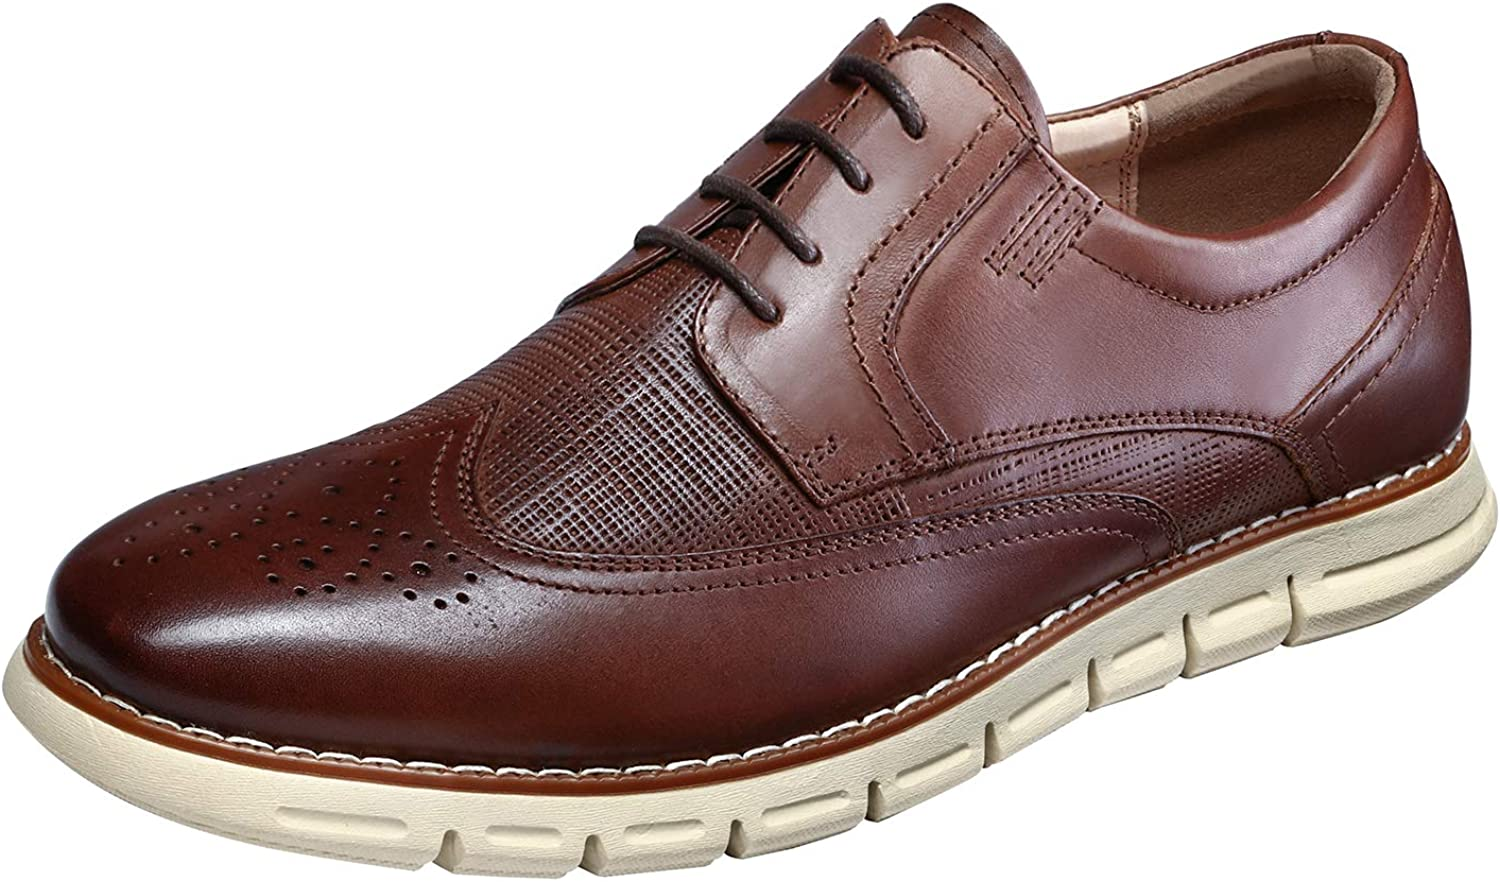 Bruno Marc Men's Oxford Dress Sneakers Tulsa Mall Gifts Shoe Casual Leather